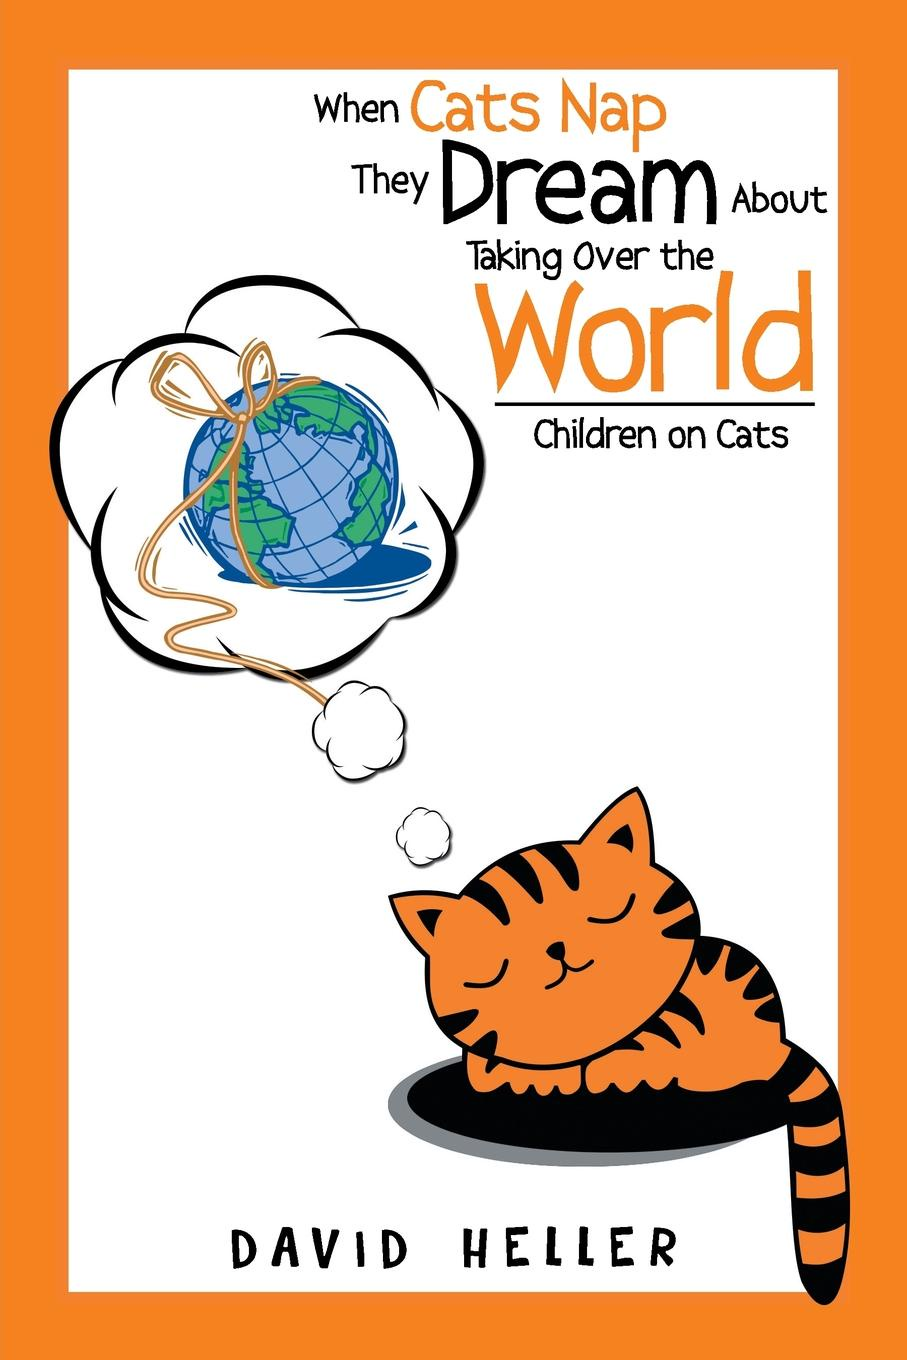 David Heller When Cats Nap They Dream About Taking Over the World. Children on